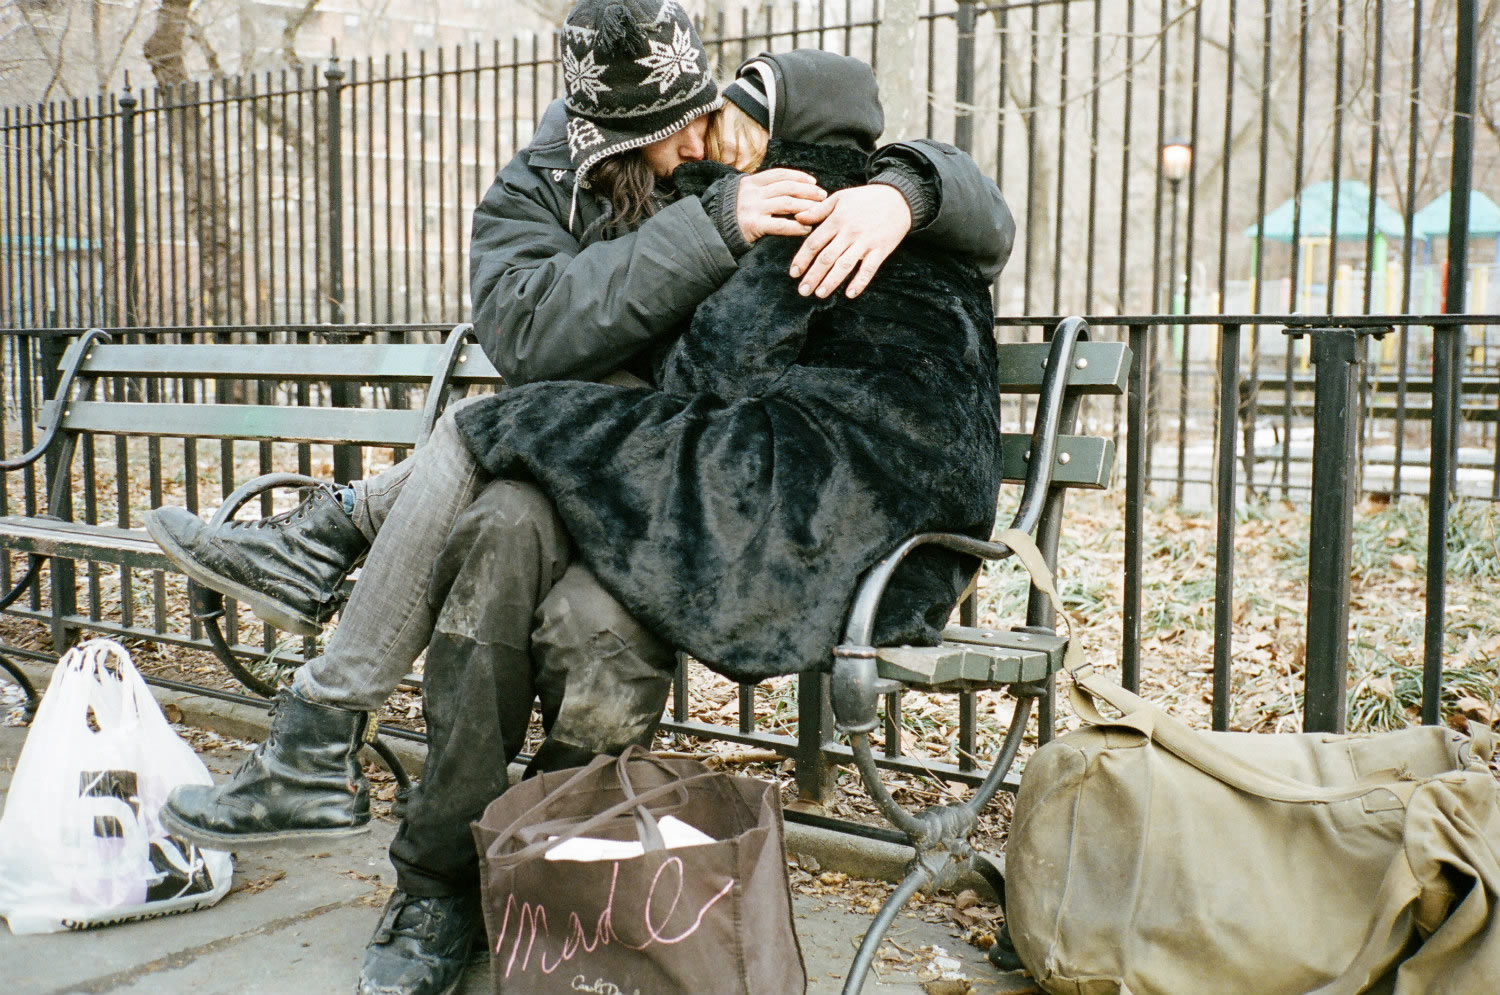 couple hugging in a street bench, heaven knows what